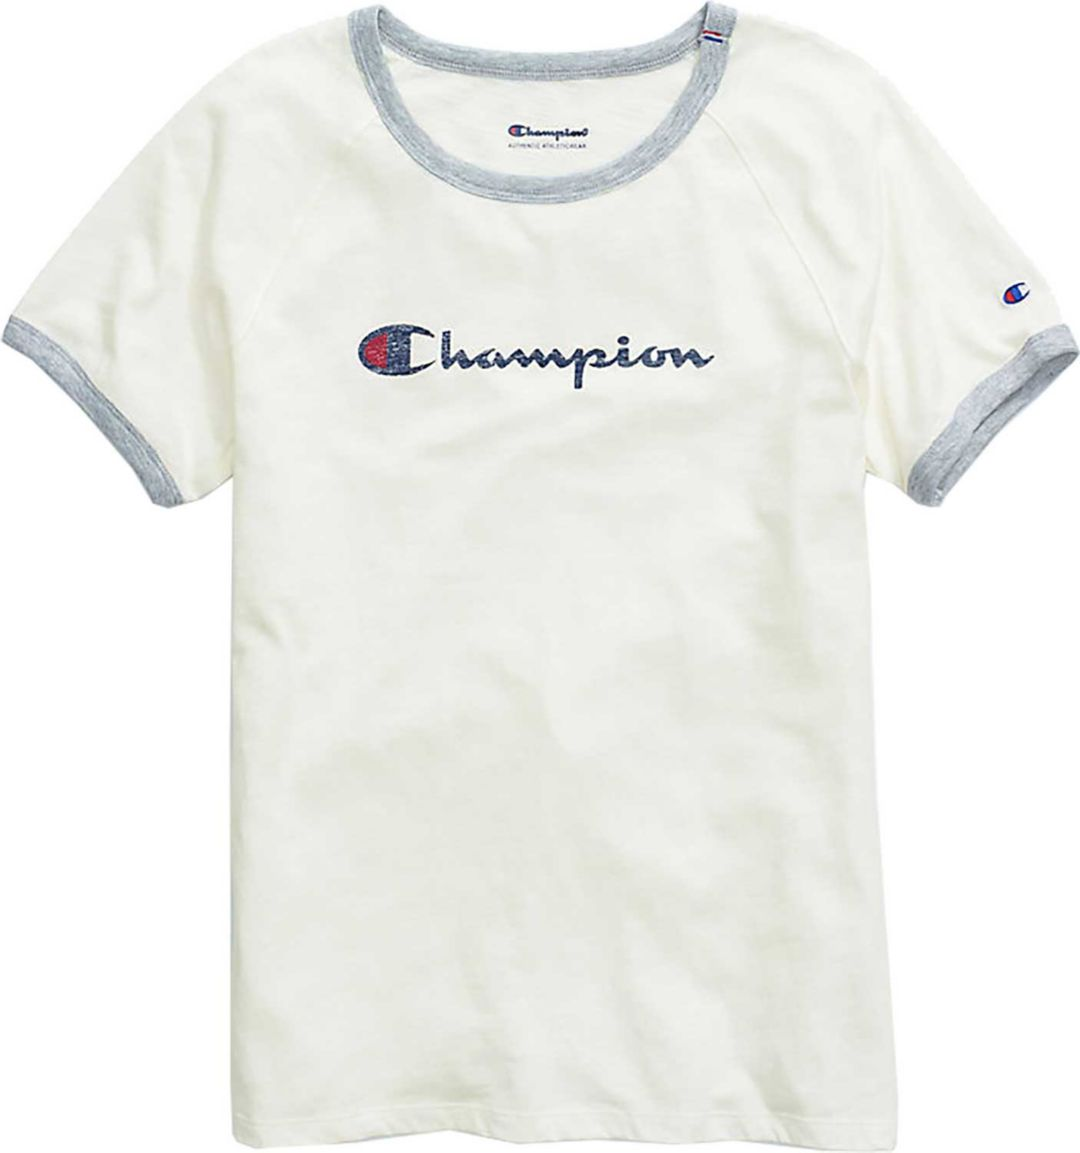 49fdd6341e1e Champion Women's Heritage Ringer T-Shirt | DICK'S Sporting Goods